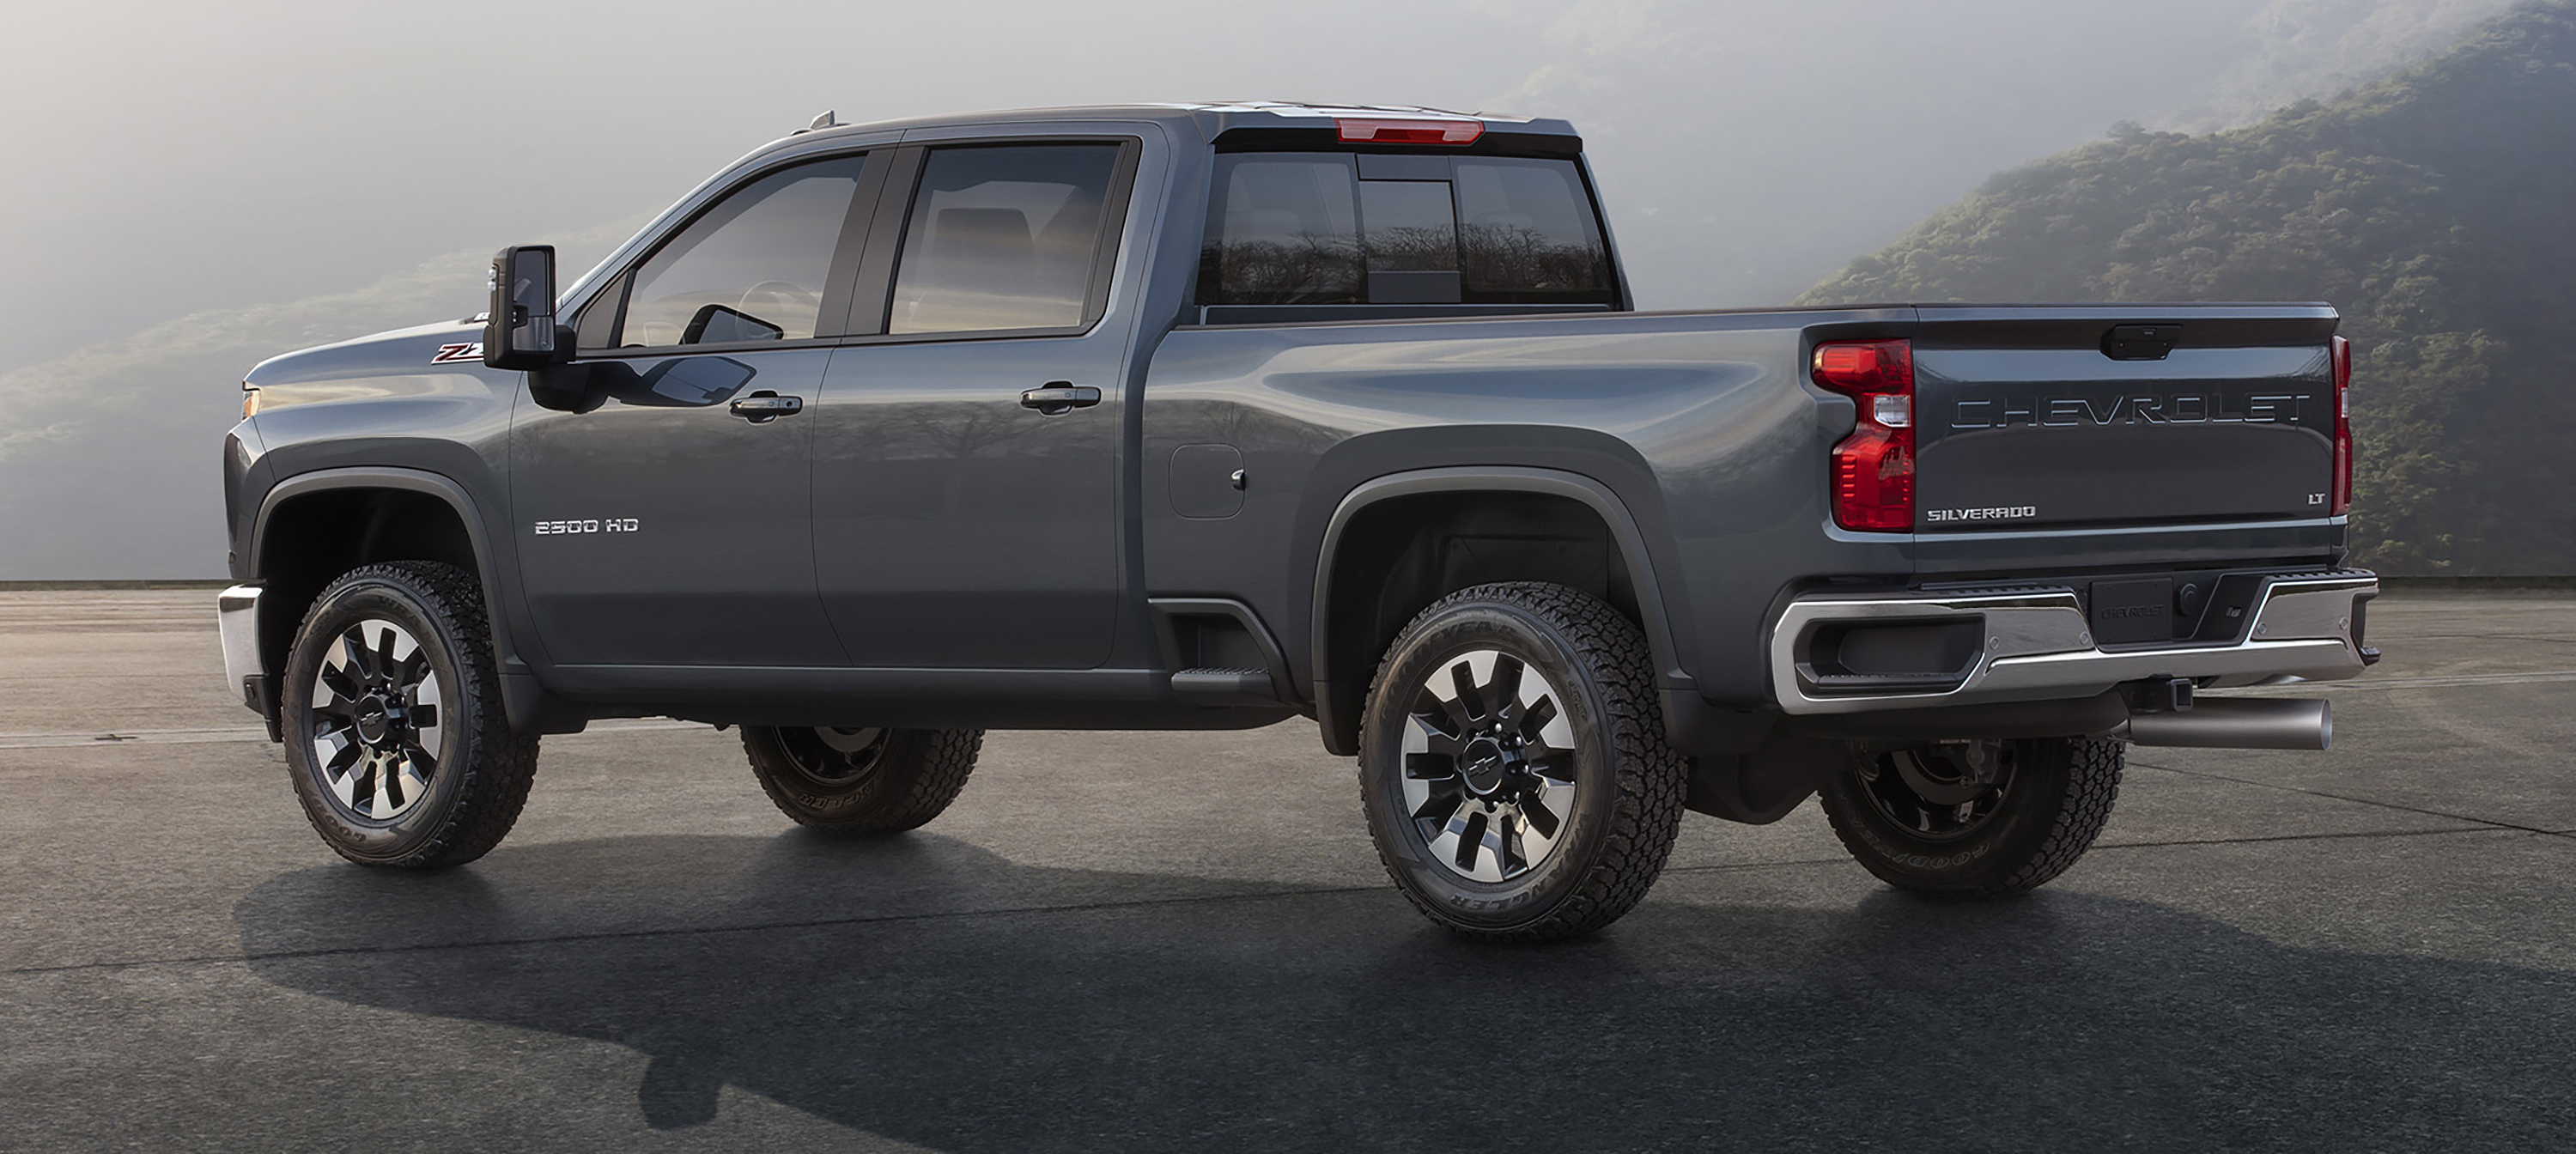 14 Things You Have To Know About The 2020 Chevrolet Silverado Hd